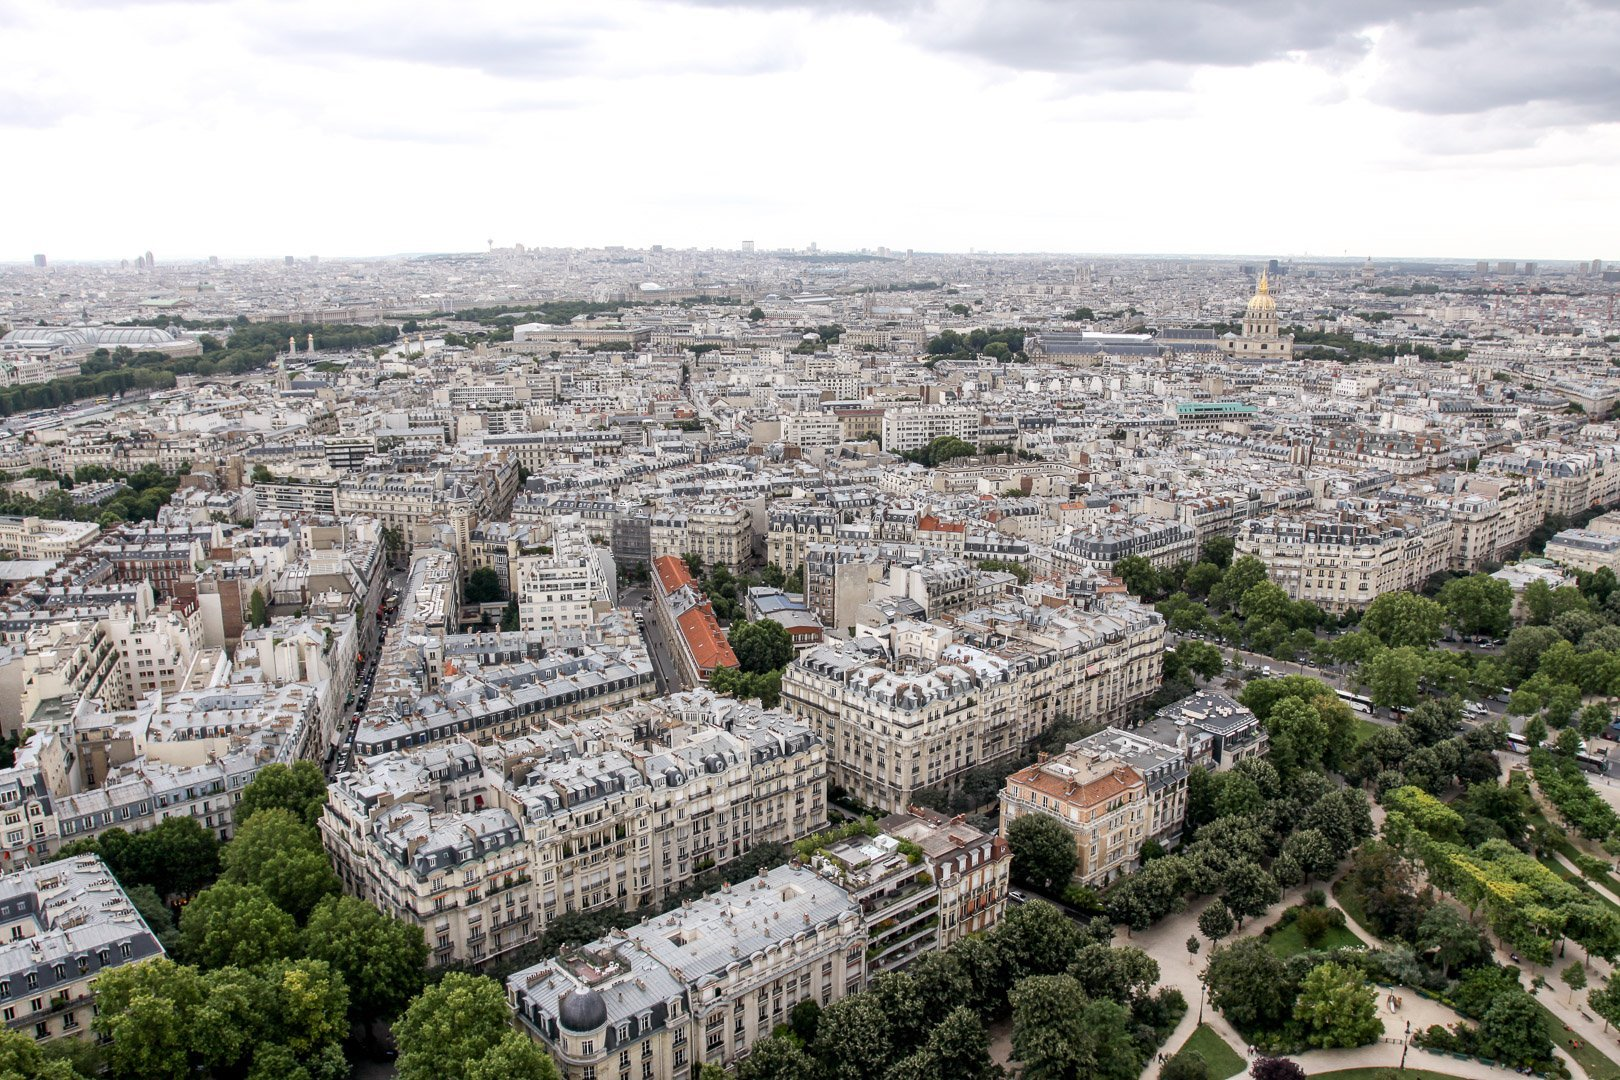 A view of the architecture in Paris from the viewing platform on the Eiffel Tower